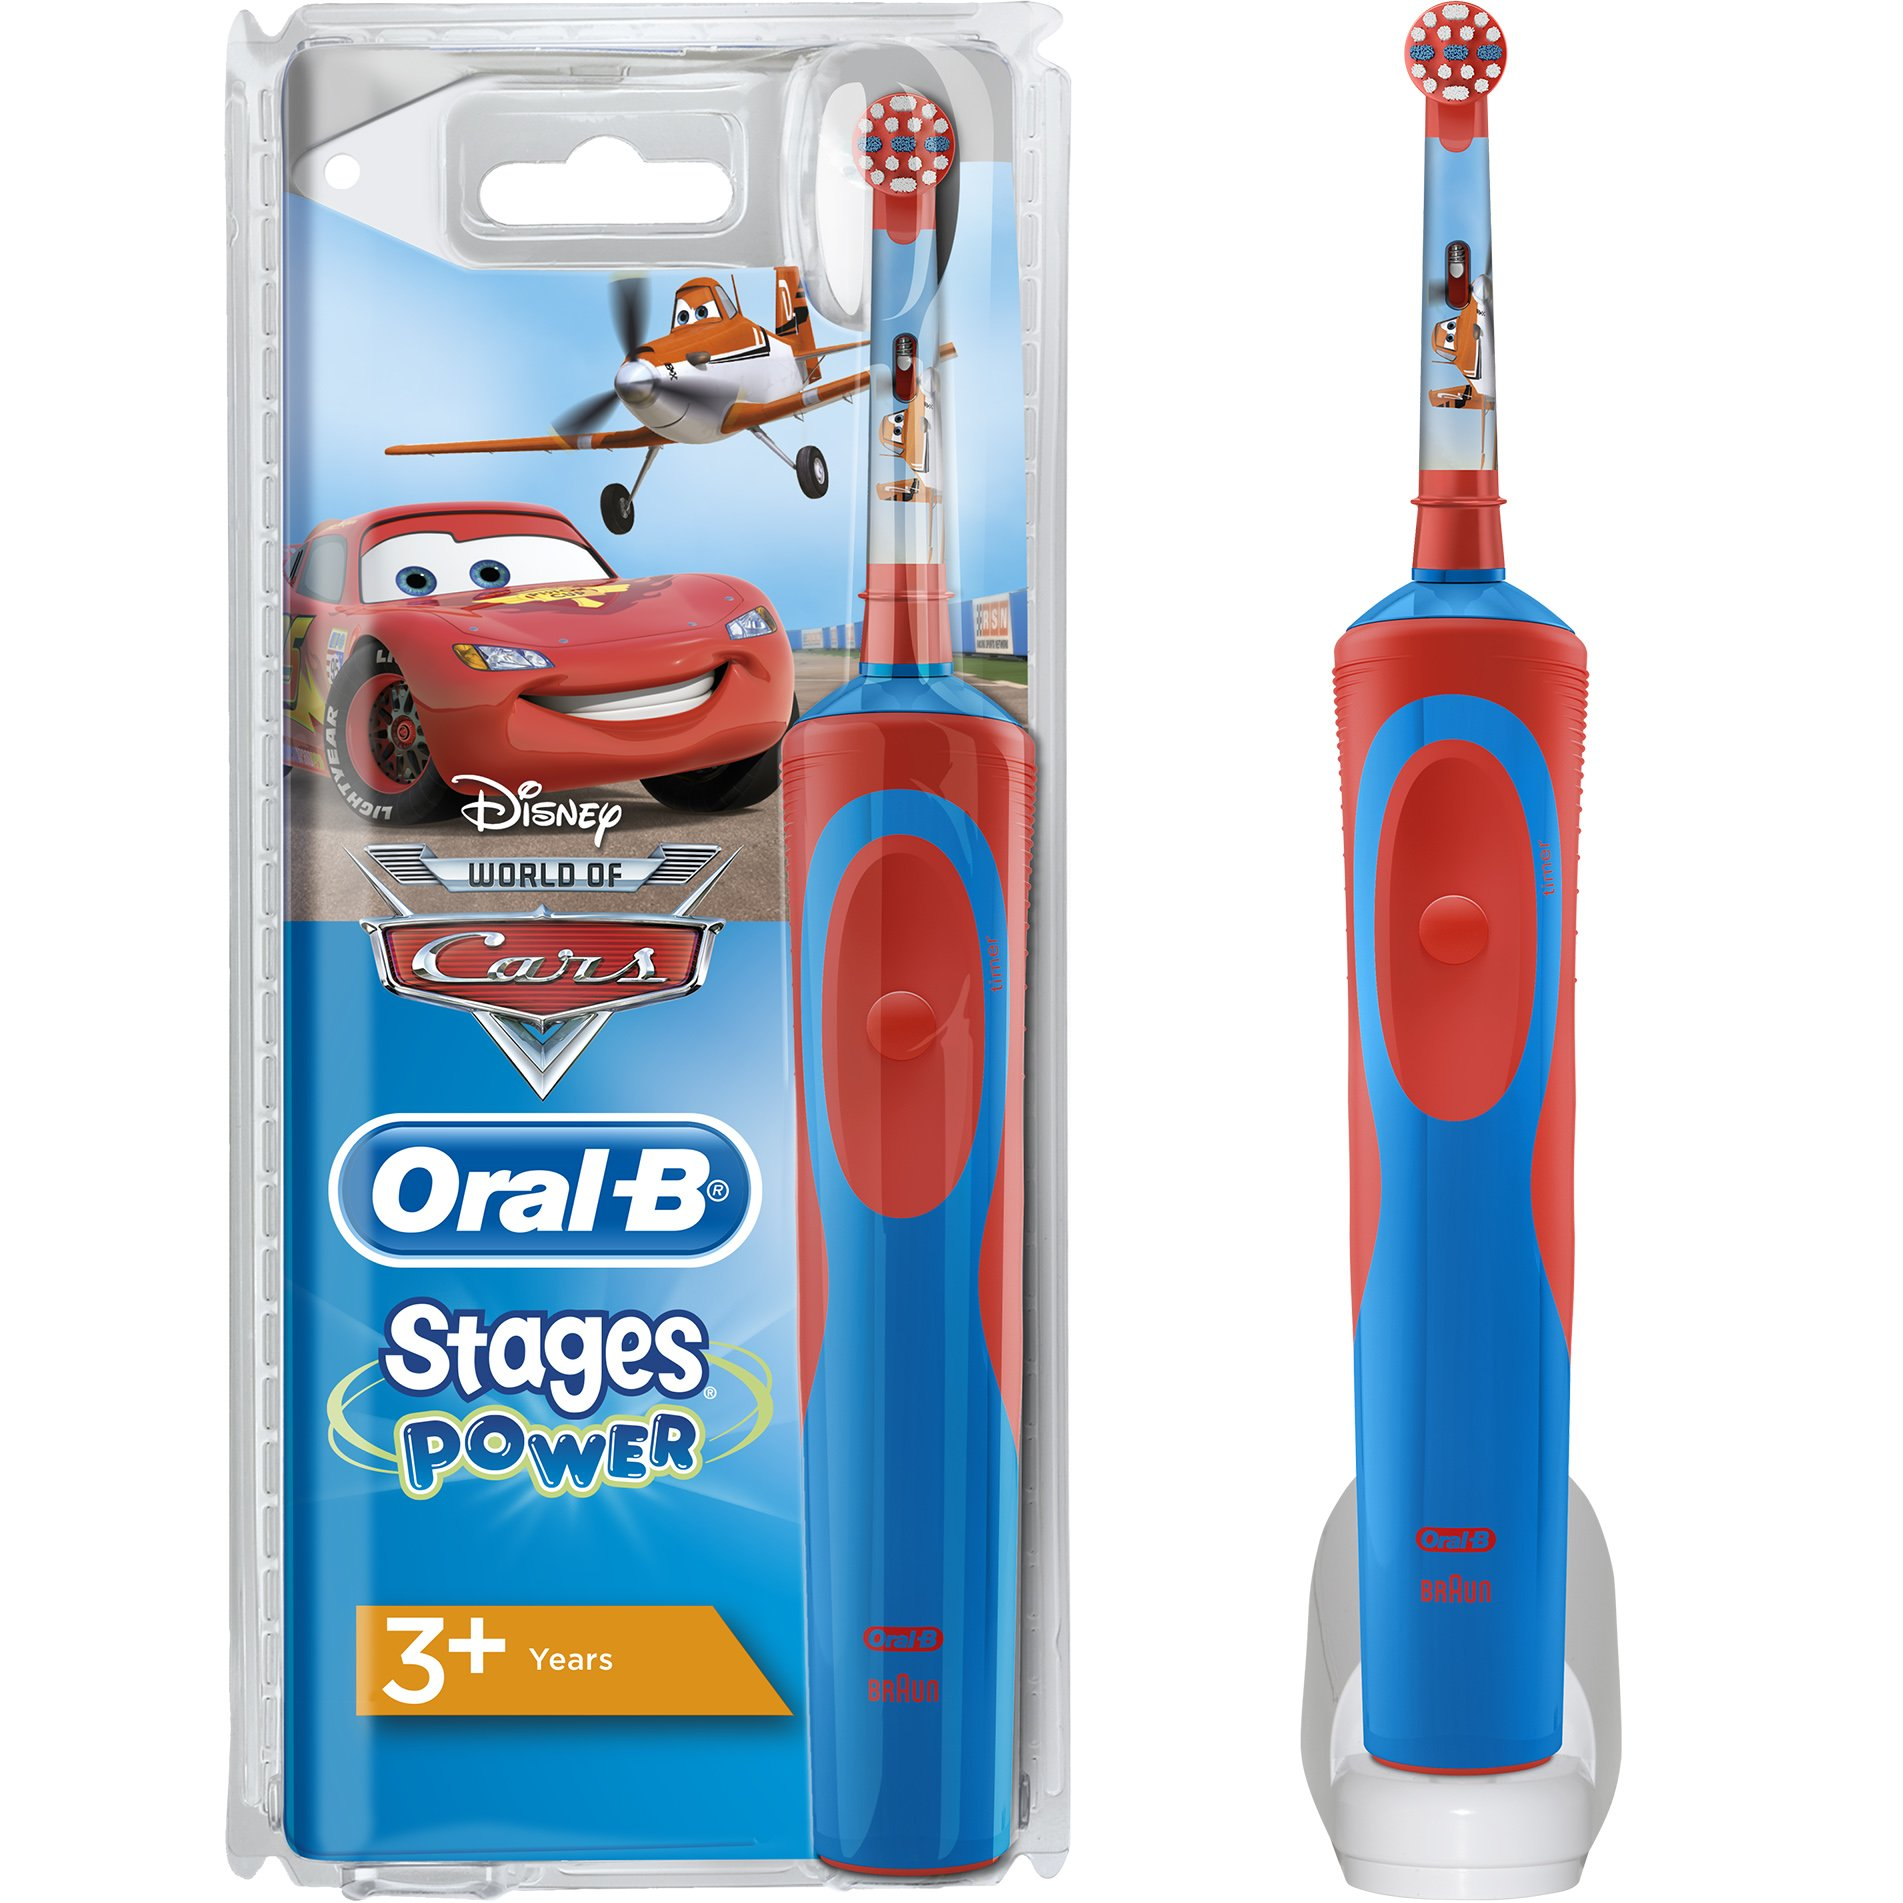 Oral-B Vitality Stages Cars 3+ years Παιδική Ηλεκτρική Οδοντόβουρτσα